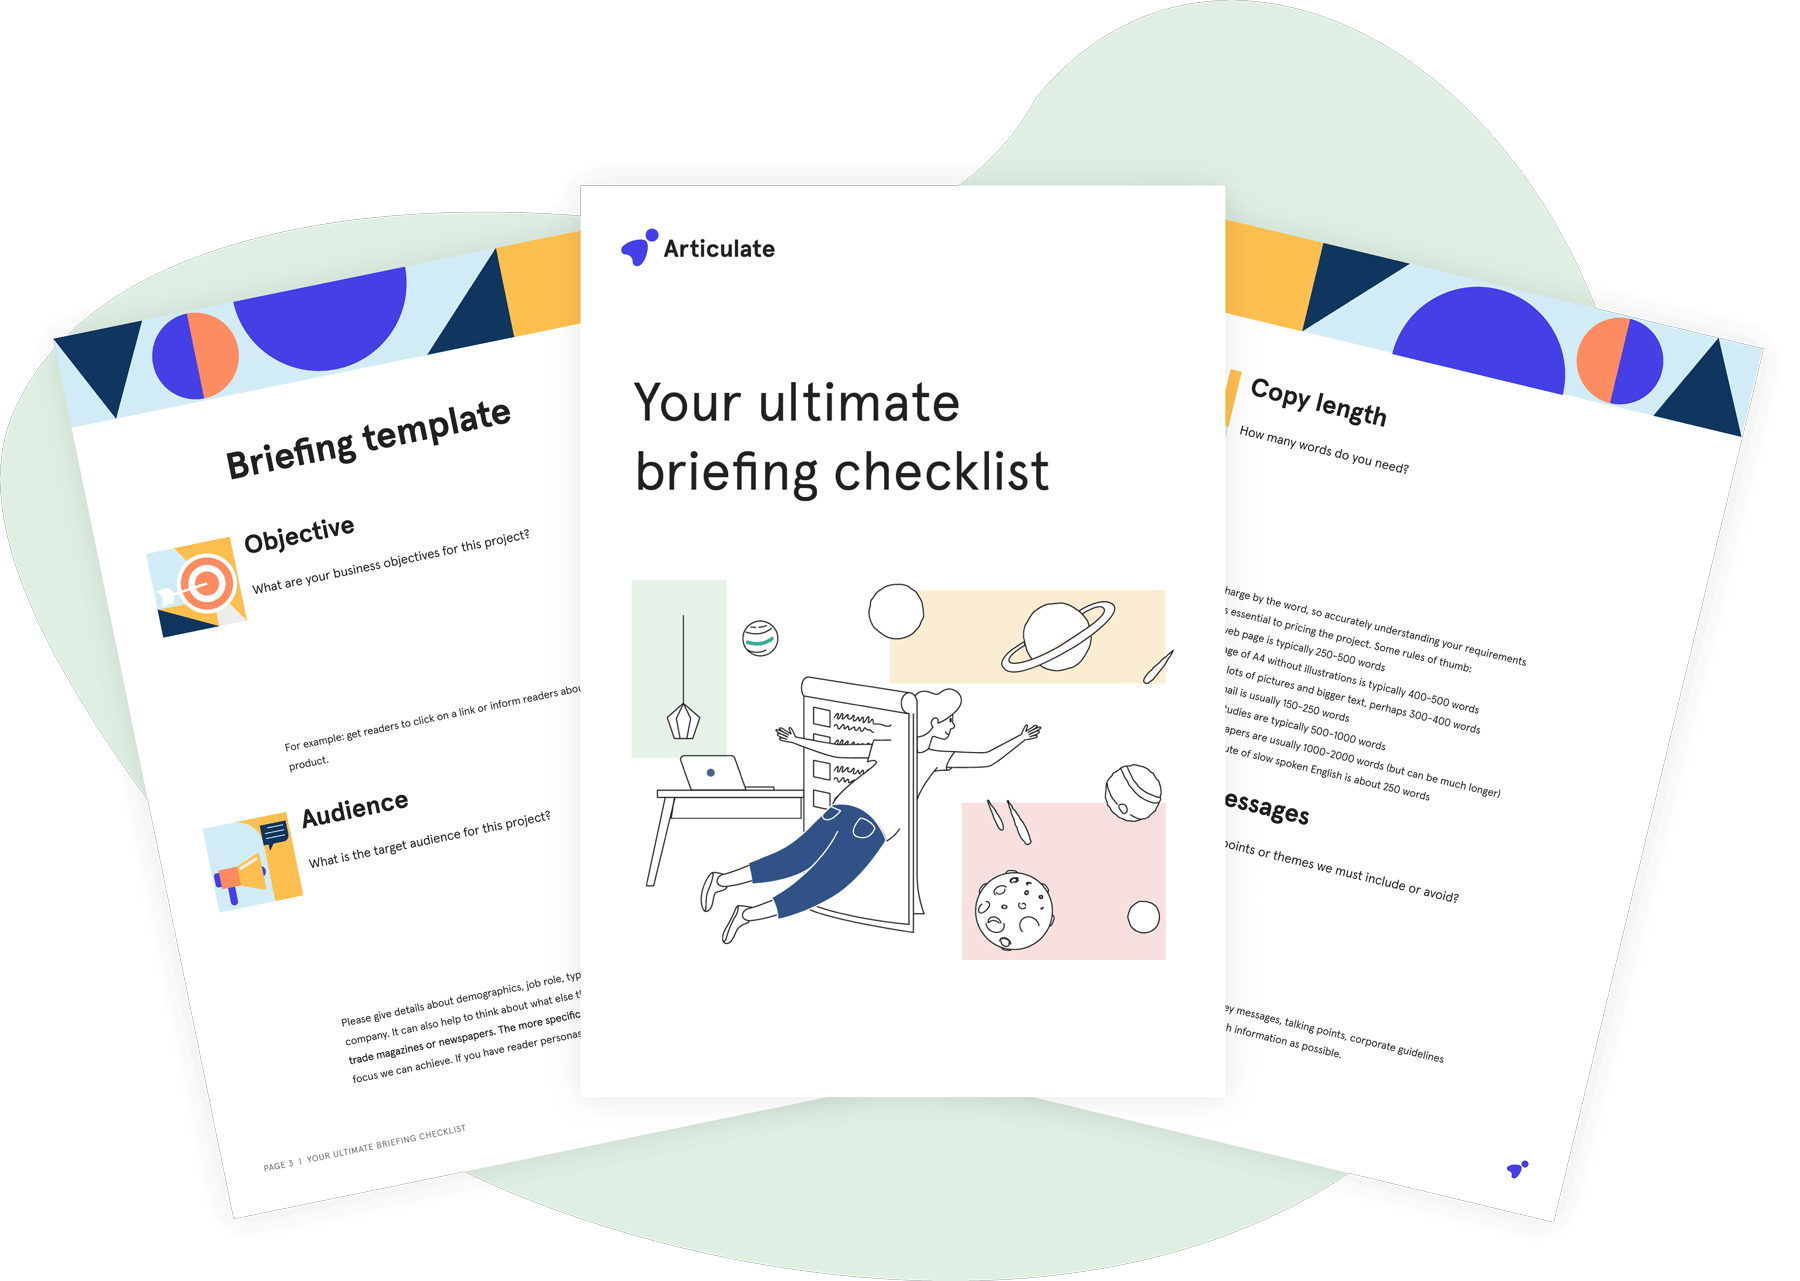 Your ultimate briefing checklist